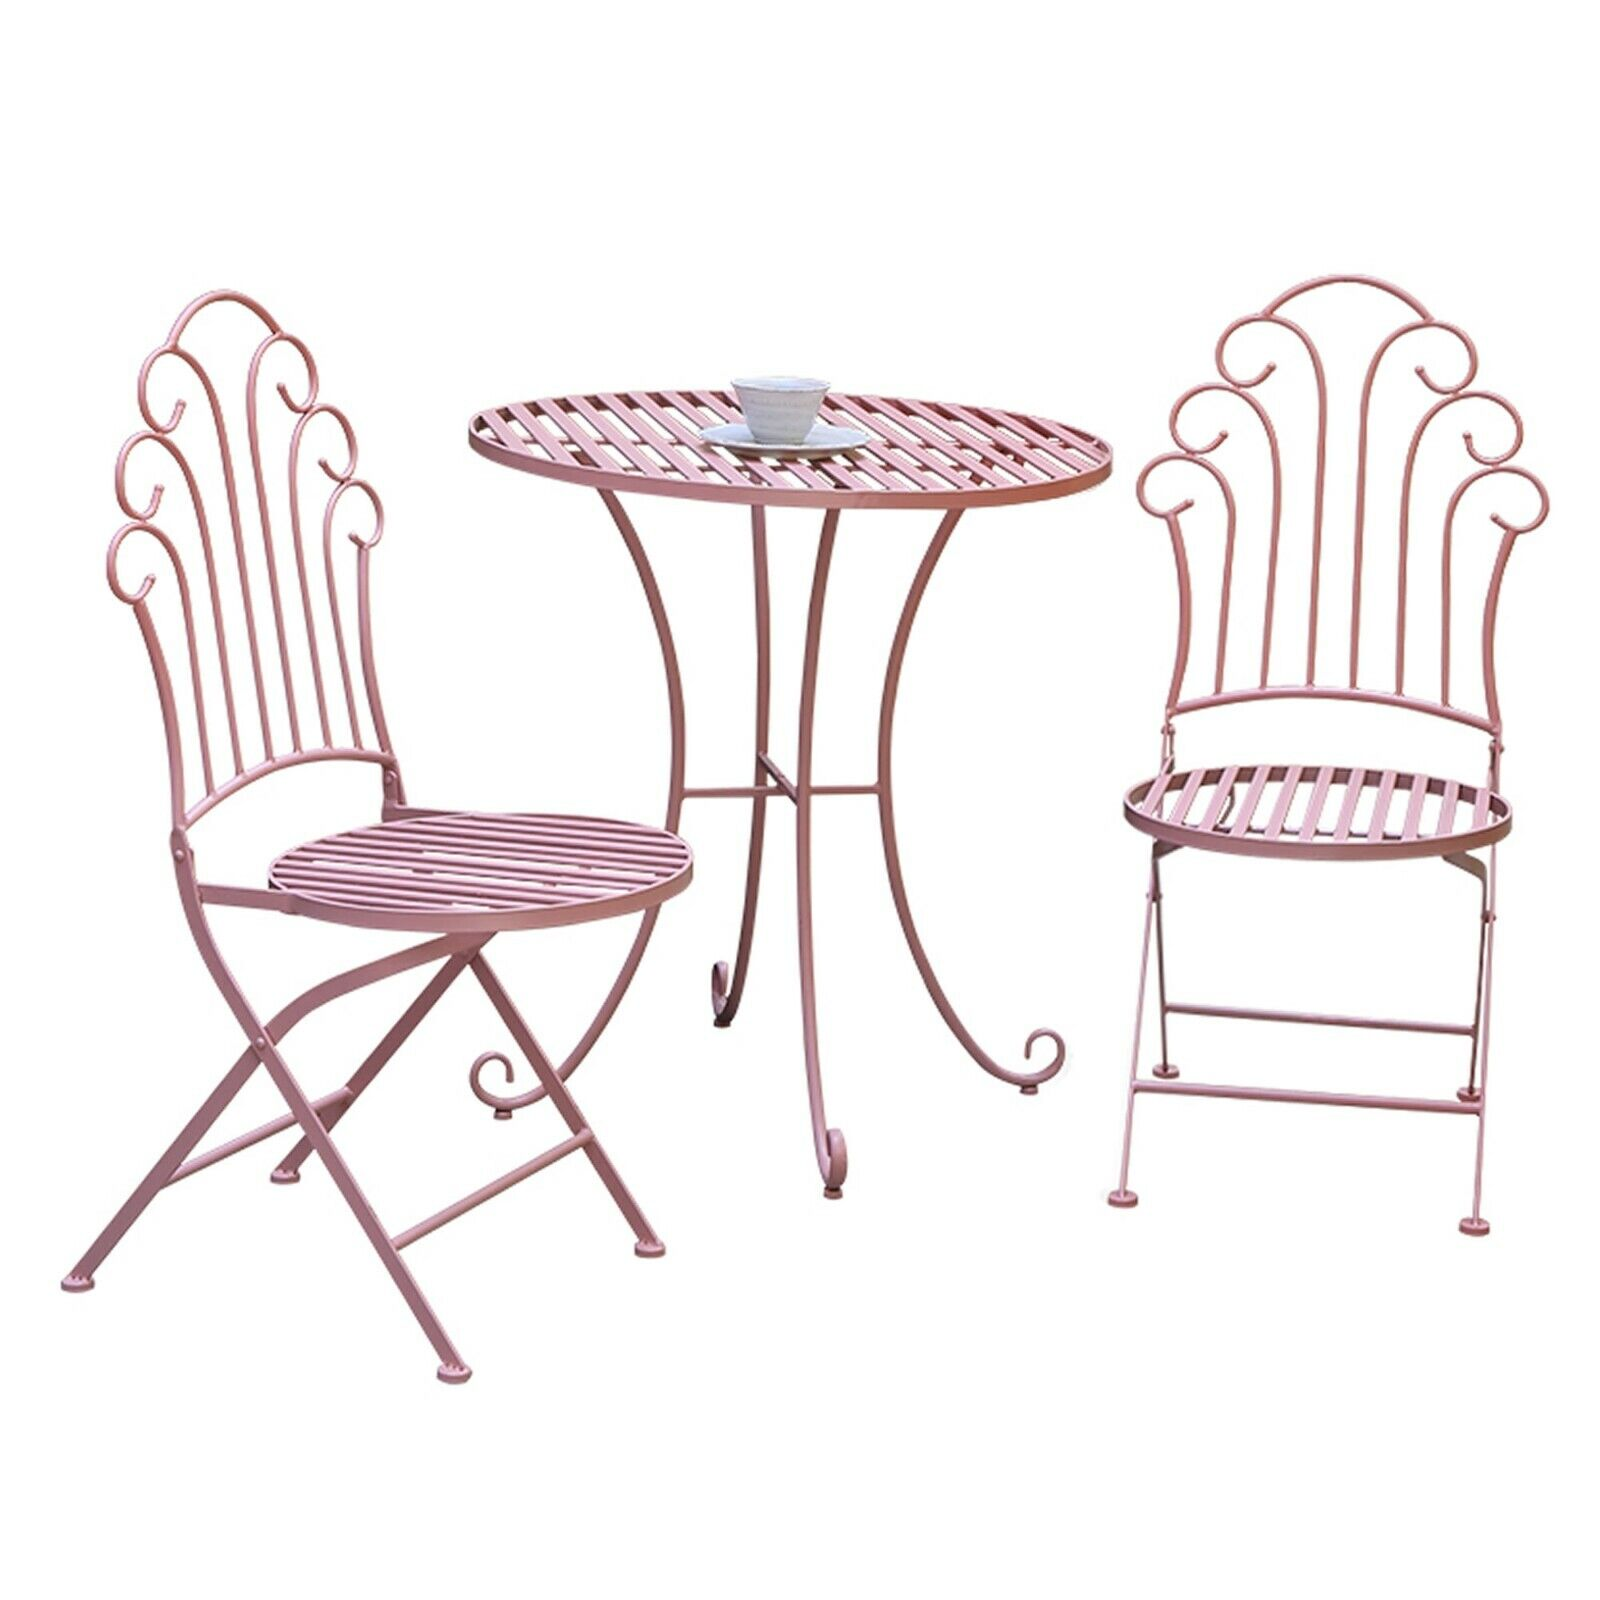 Garden Furniture - GlamHaus Metal Bistro Set Garden Patio Furniture Outdoor 3 Piece Table Chairs